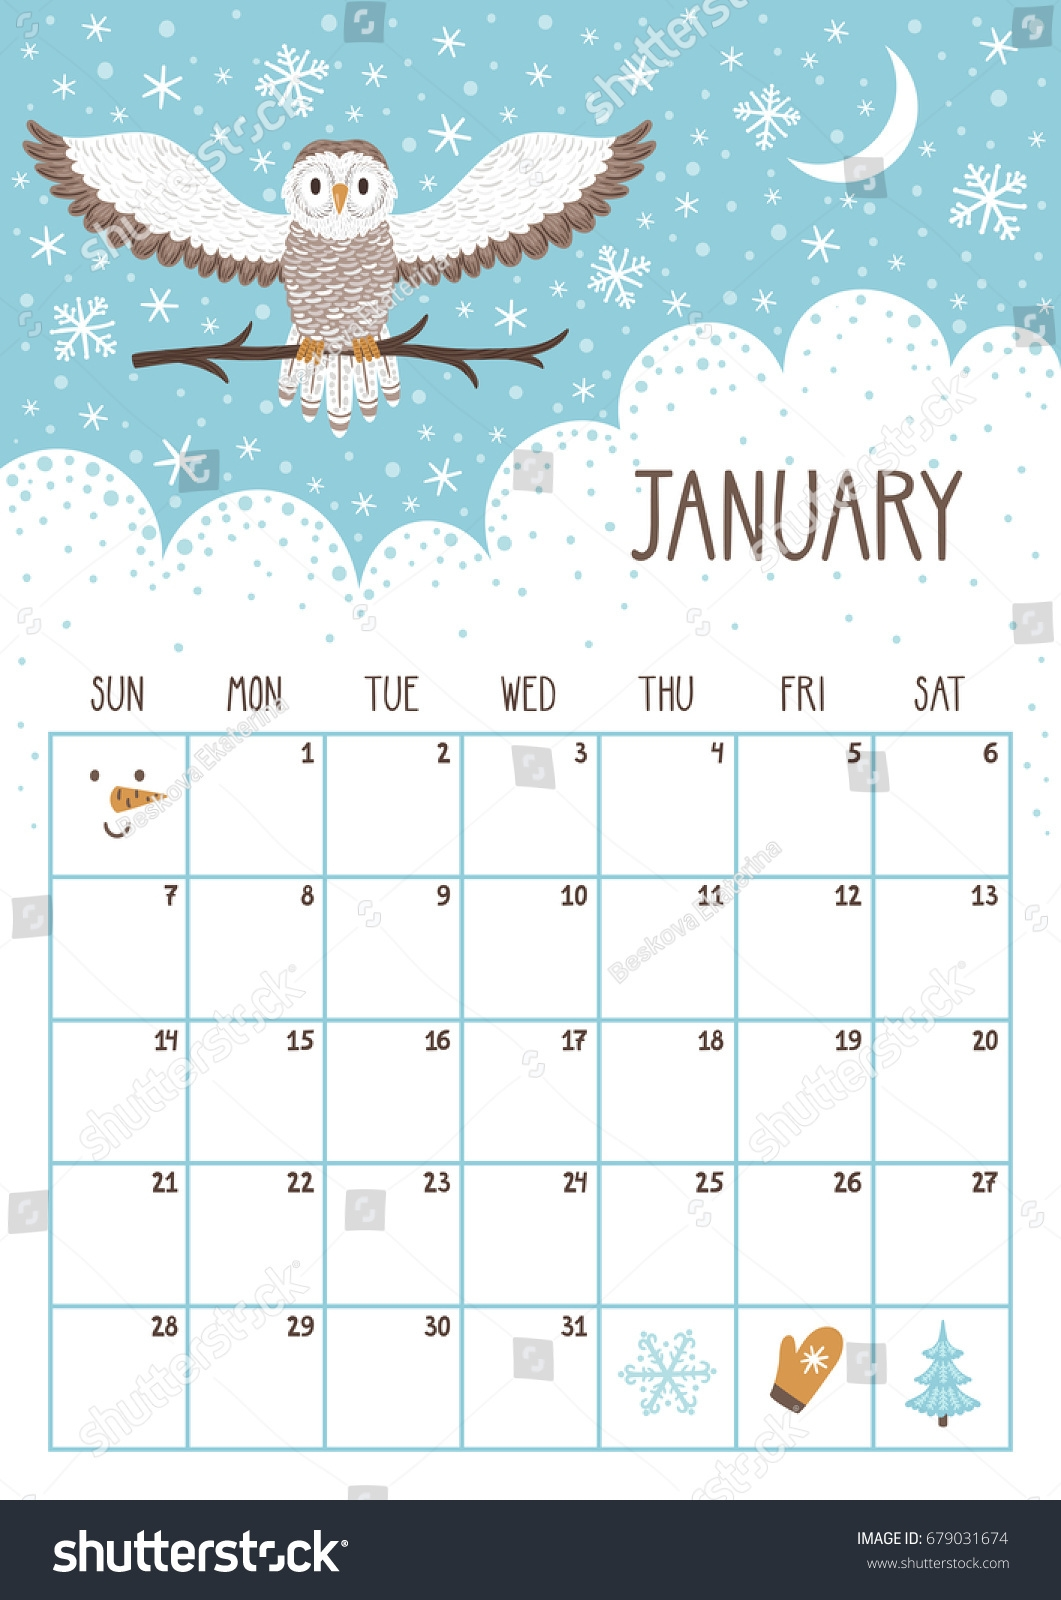 january 2018 calendars  Cute Free Monthly Printable Calendar 2018 erdferdf